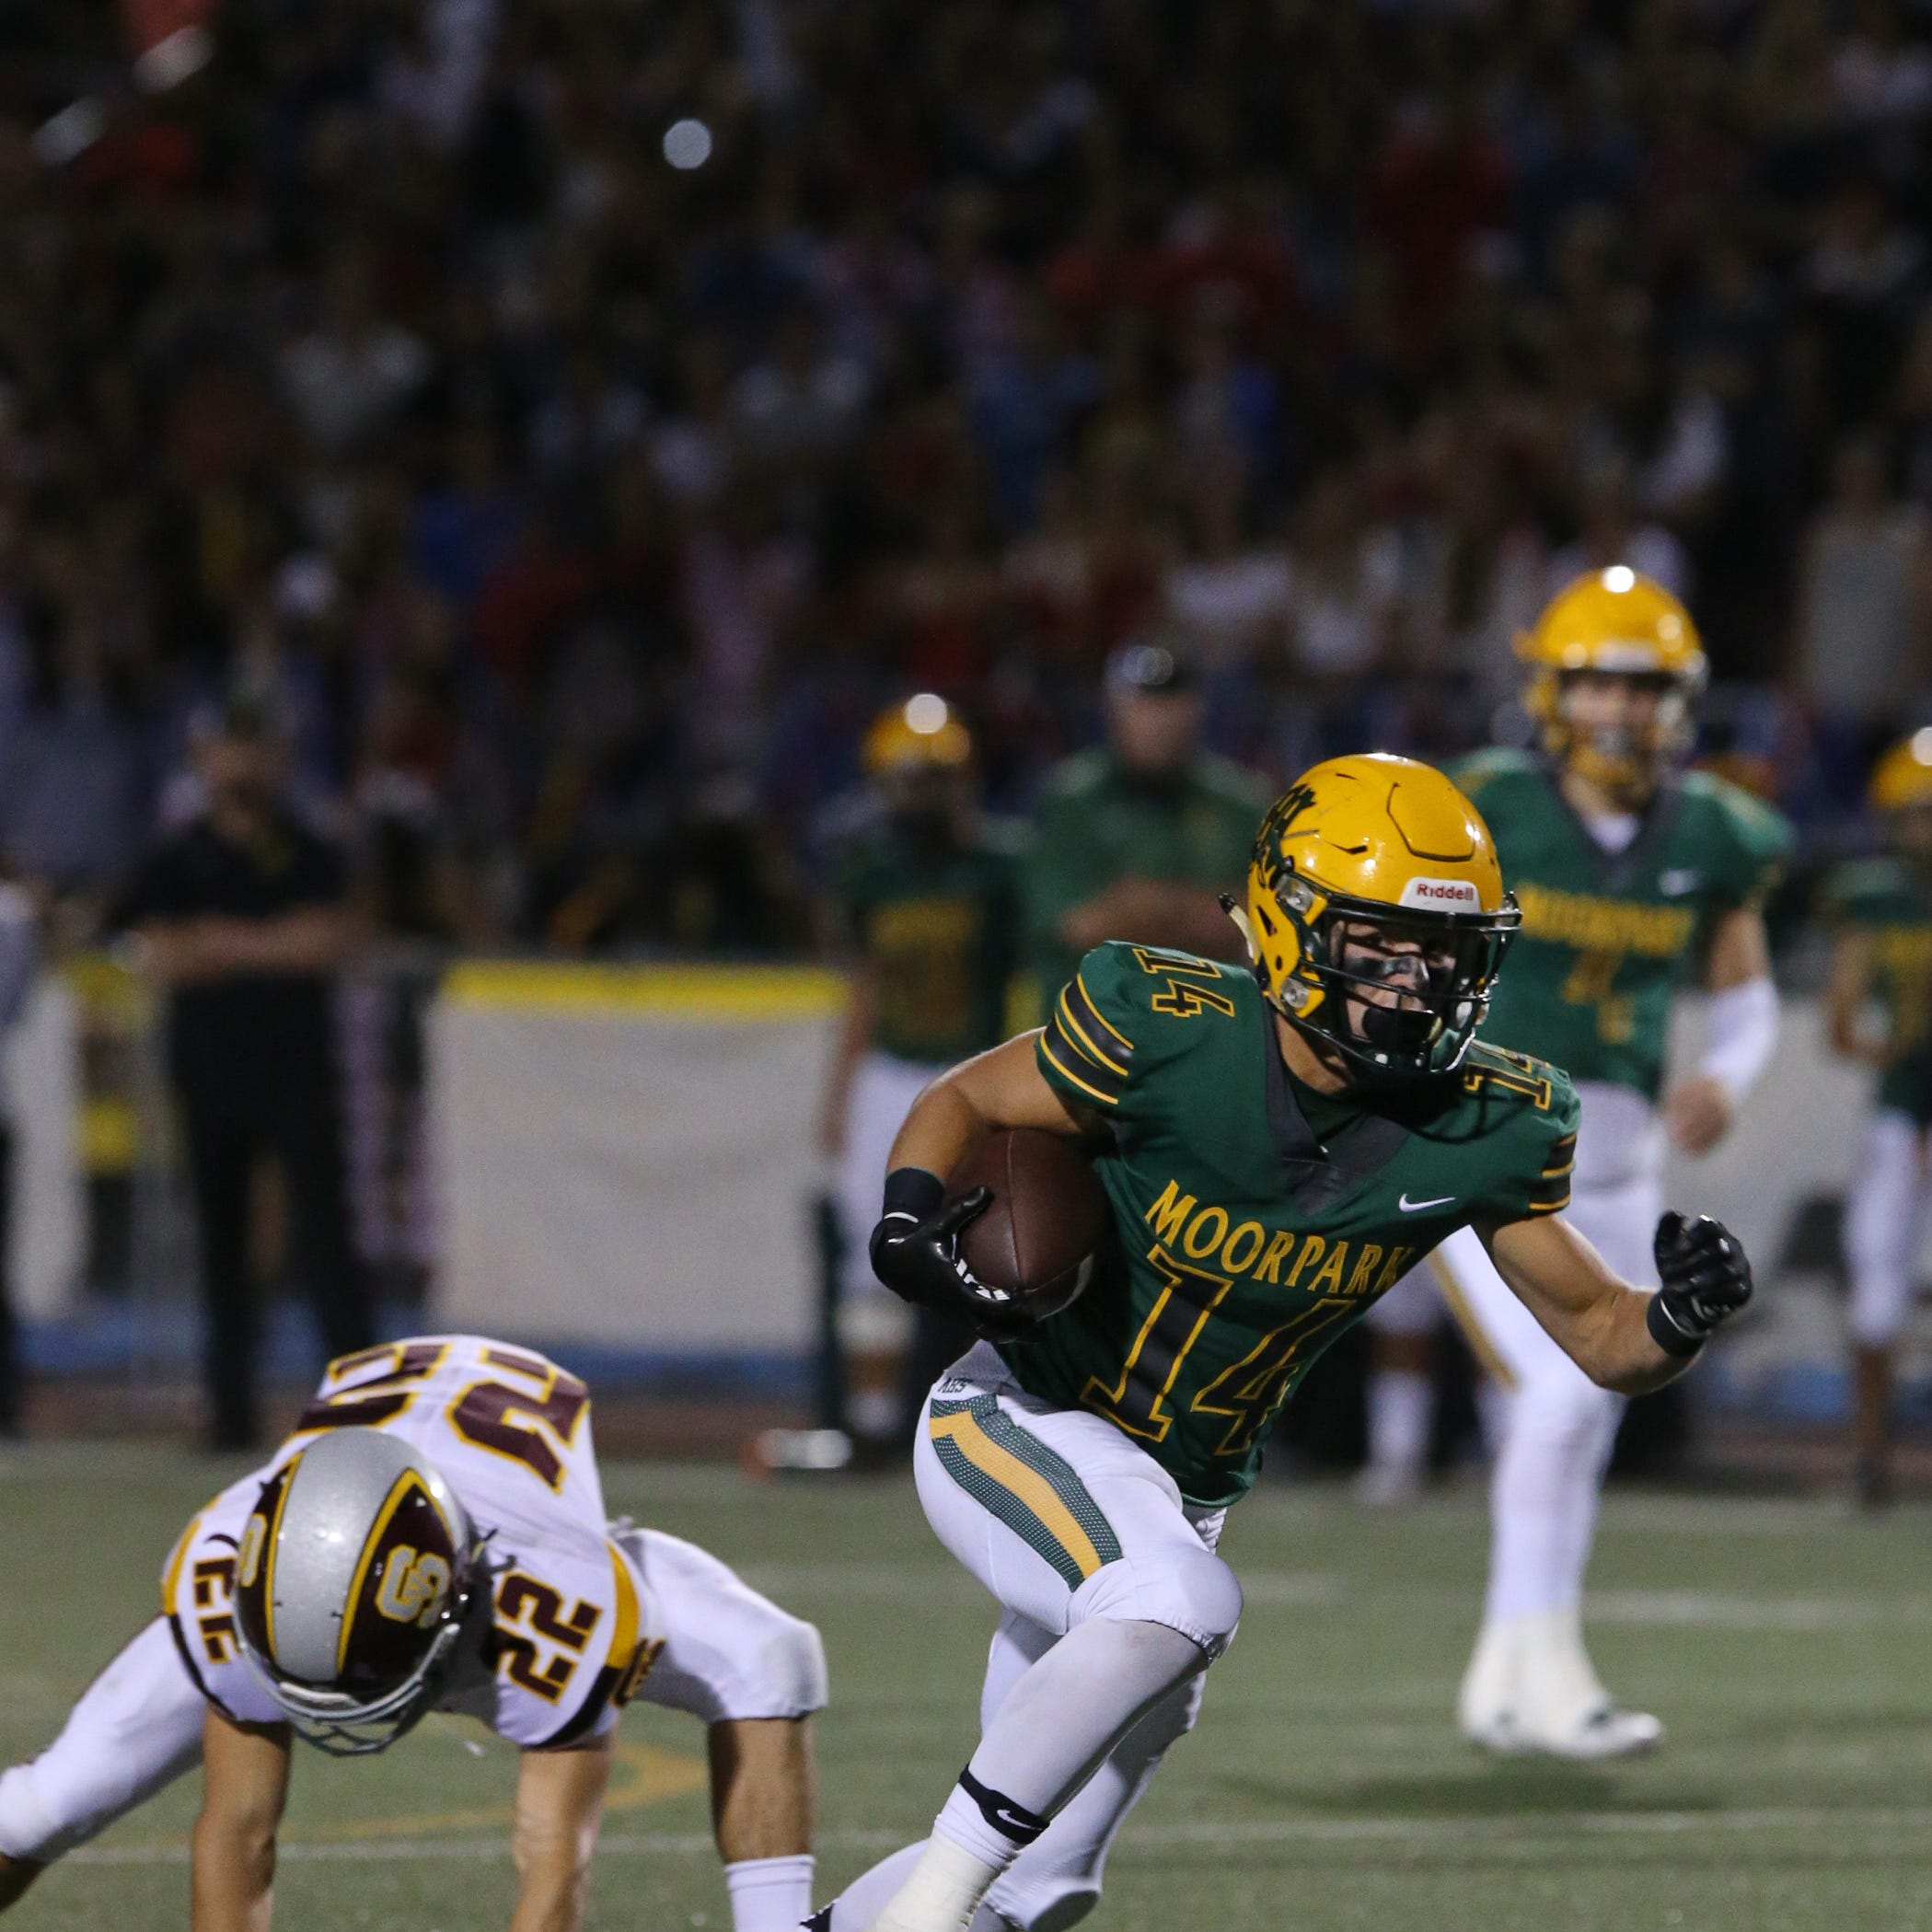 Moorpark rebounds from first loss with rout of Simi Valley